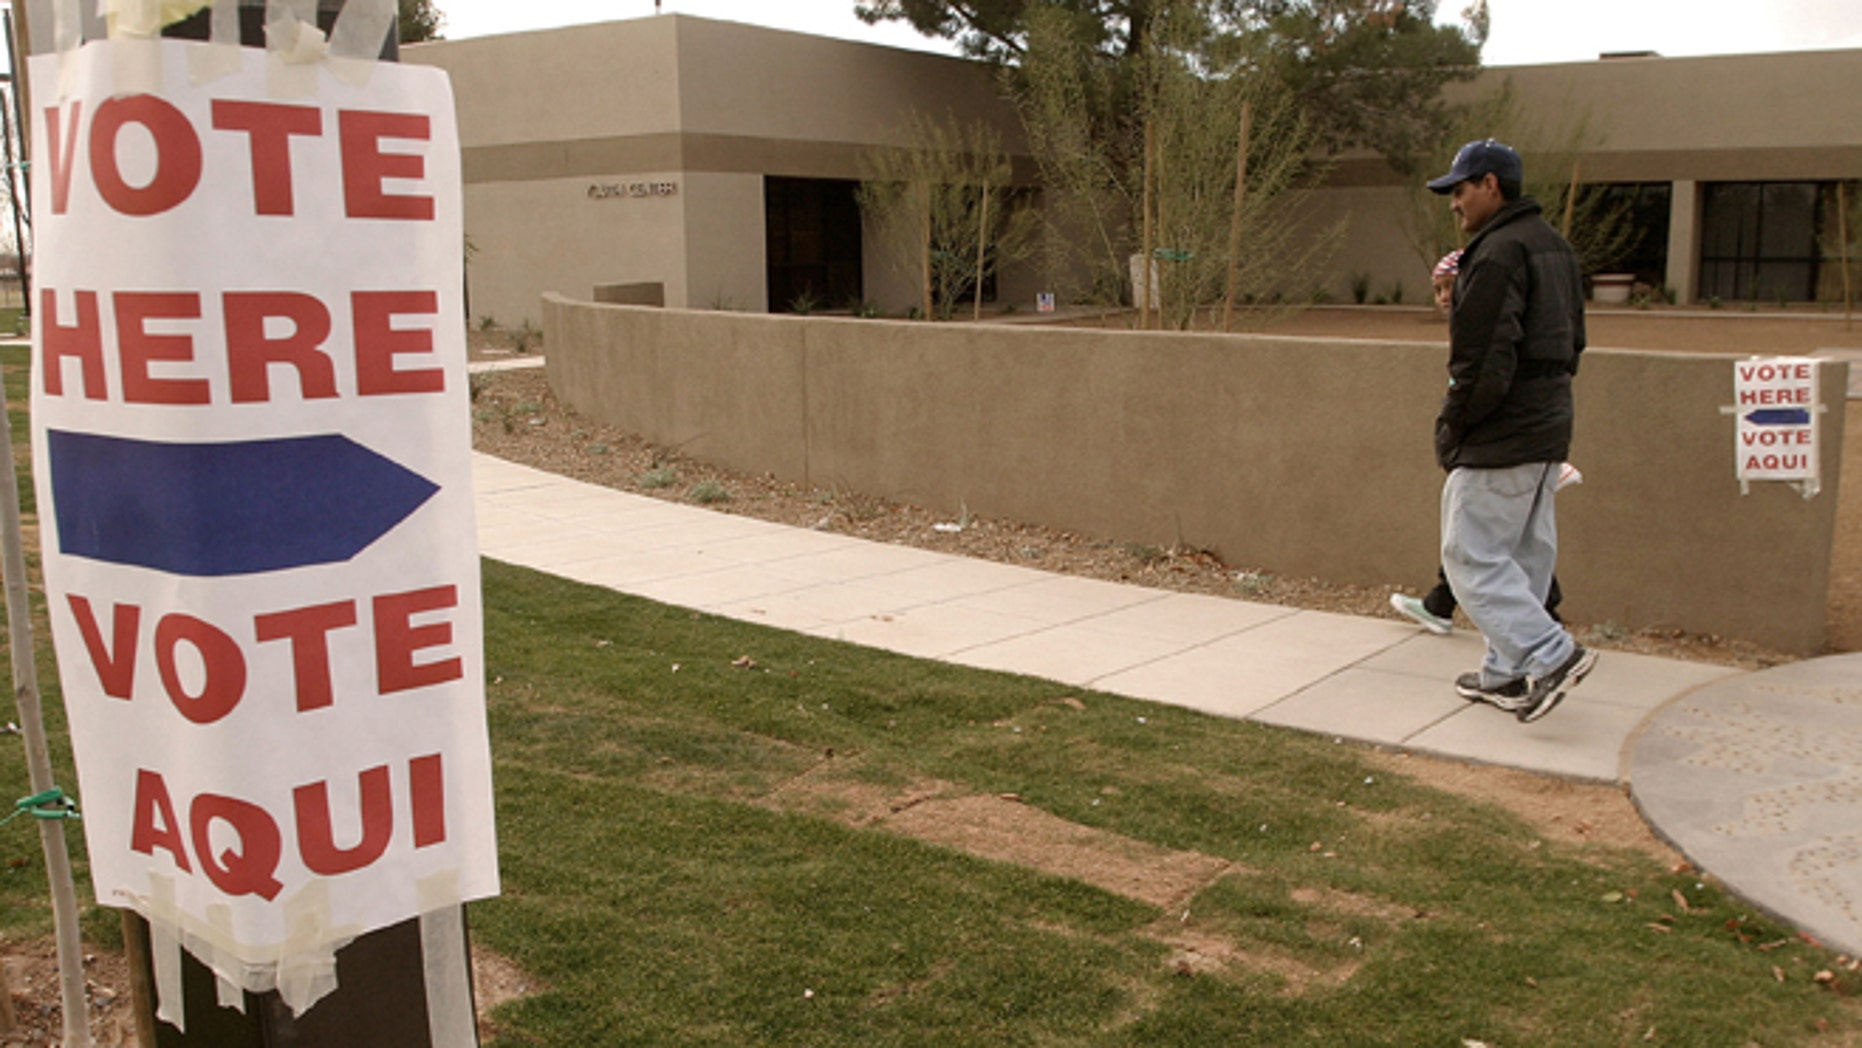 Lupe Montoya (wearing cap) and his neighbor Juana Nicholas, of El Mirage, Arizona walk to the El Mirage Youth Center, February 3, 2004 where they will vote in the state's democratic presidential primary election. (Photo by Jeff Topping/Getty Images)